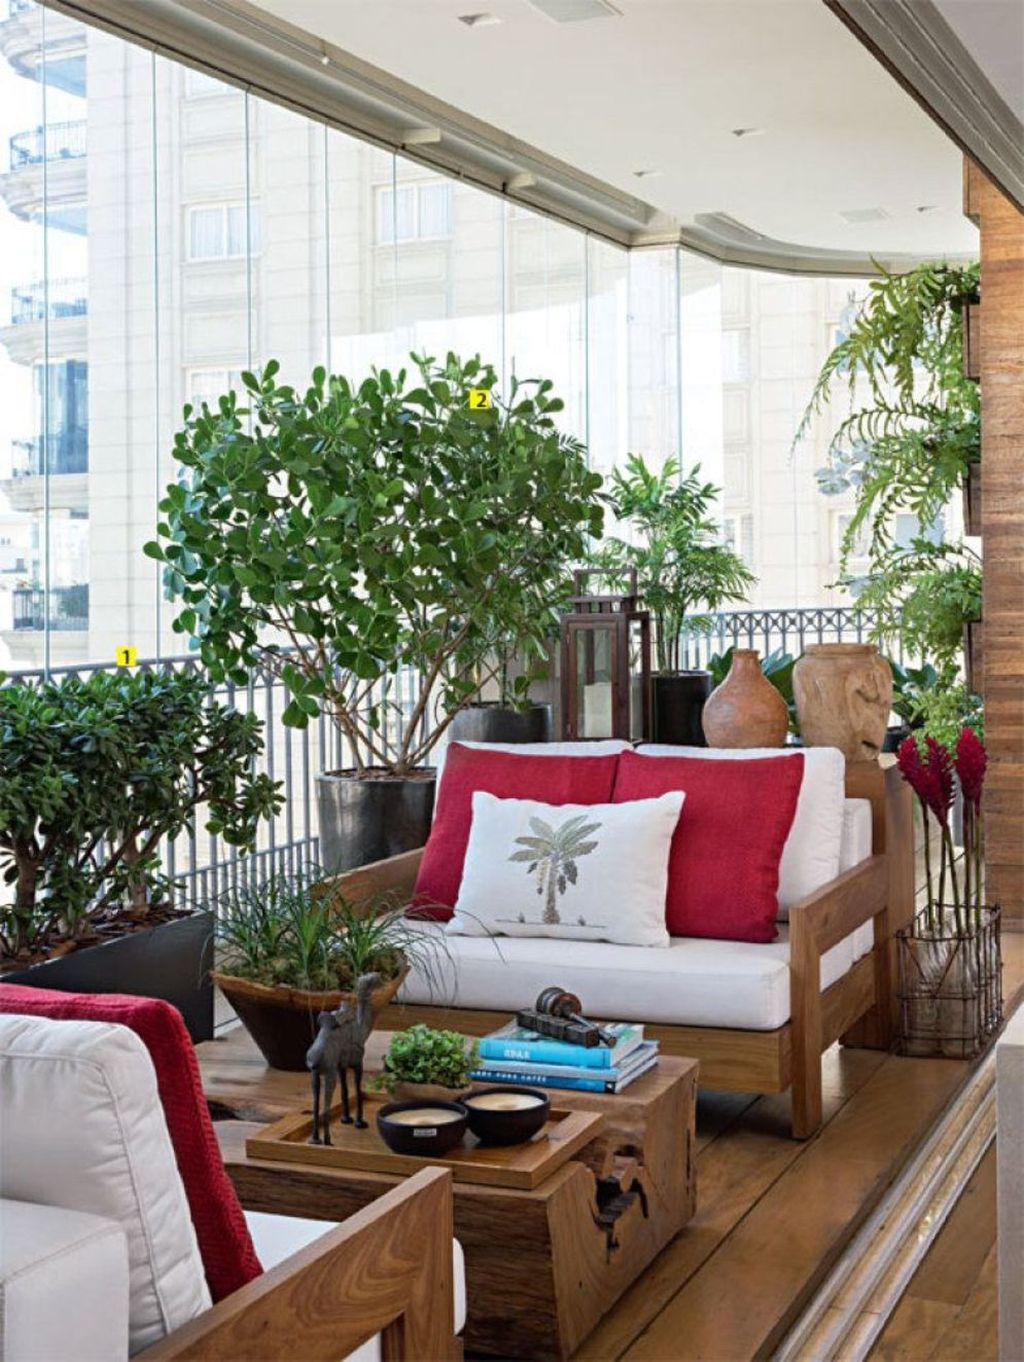 Stunning Apartment Garden Design Ideas 31